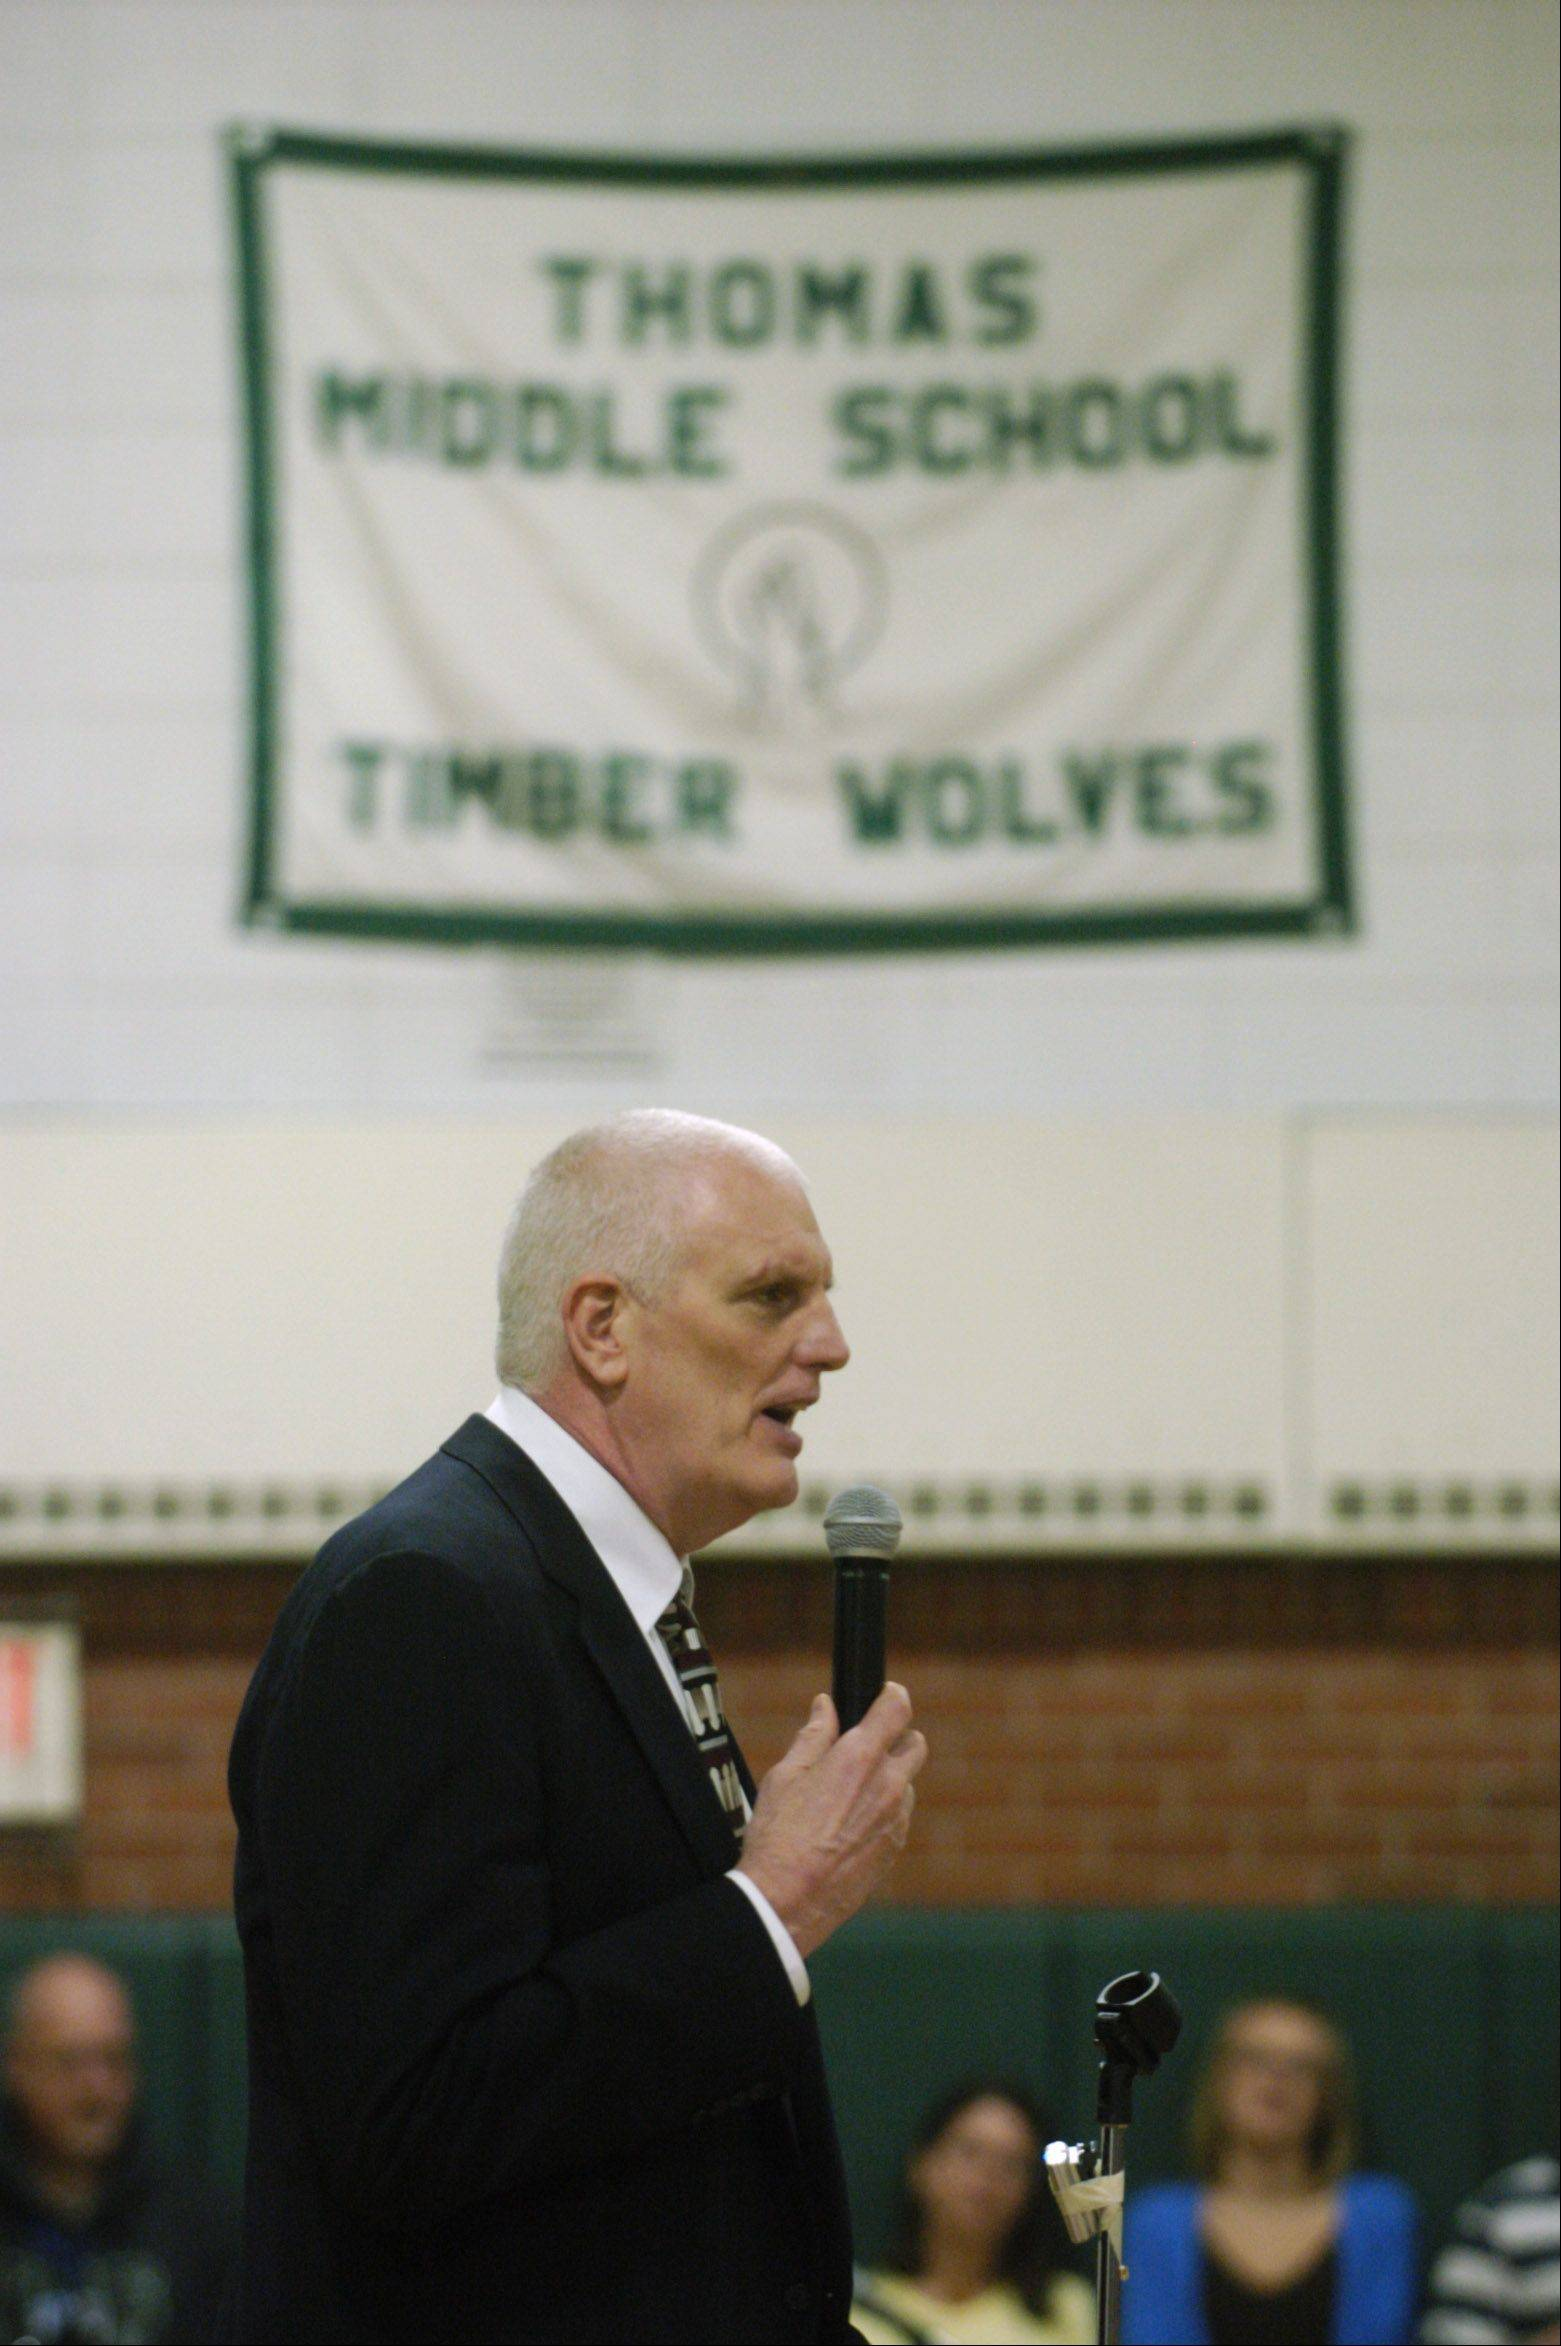 Former basketball player Dave Corzine speaks during an assembly at Thomas Middle School in Arlington Heights Thursday.